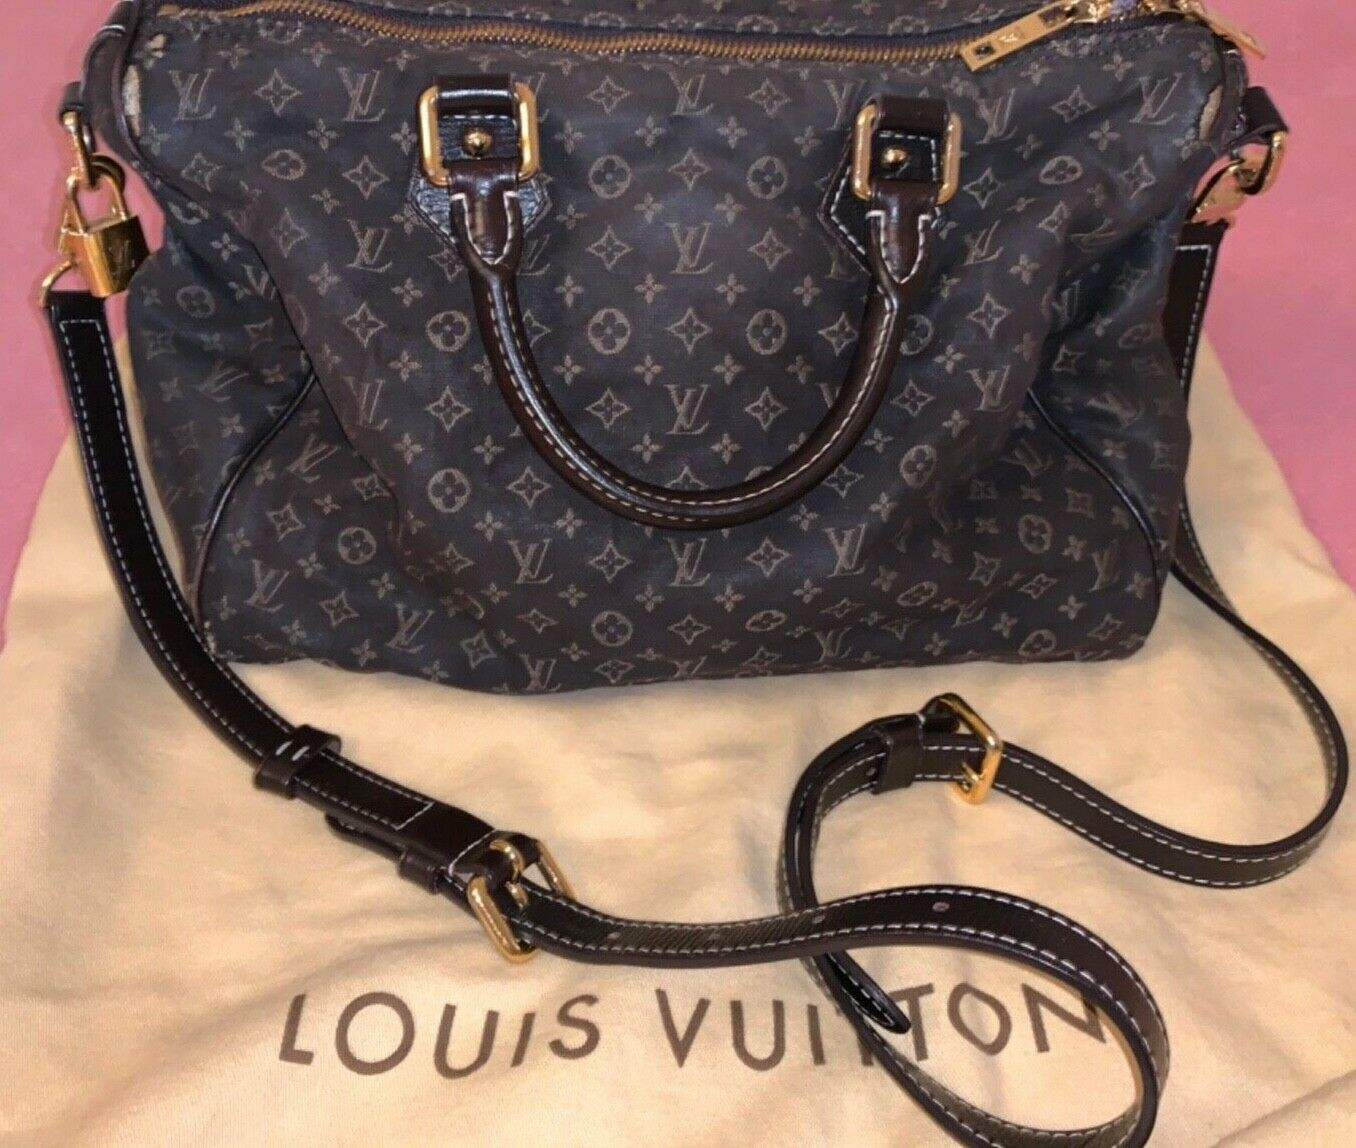 Original Louis Vuitton Tasche Damen - 599.00,Kaufpreis 599,datum 01.07.2020 22:12:37,Website quoka.de